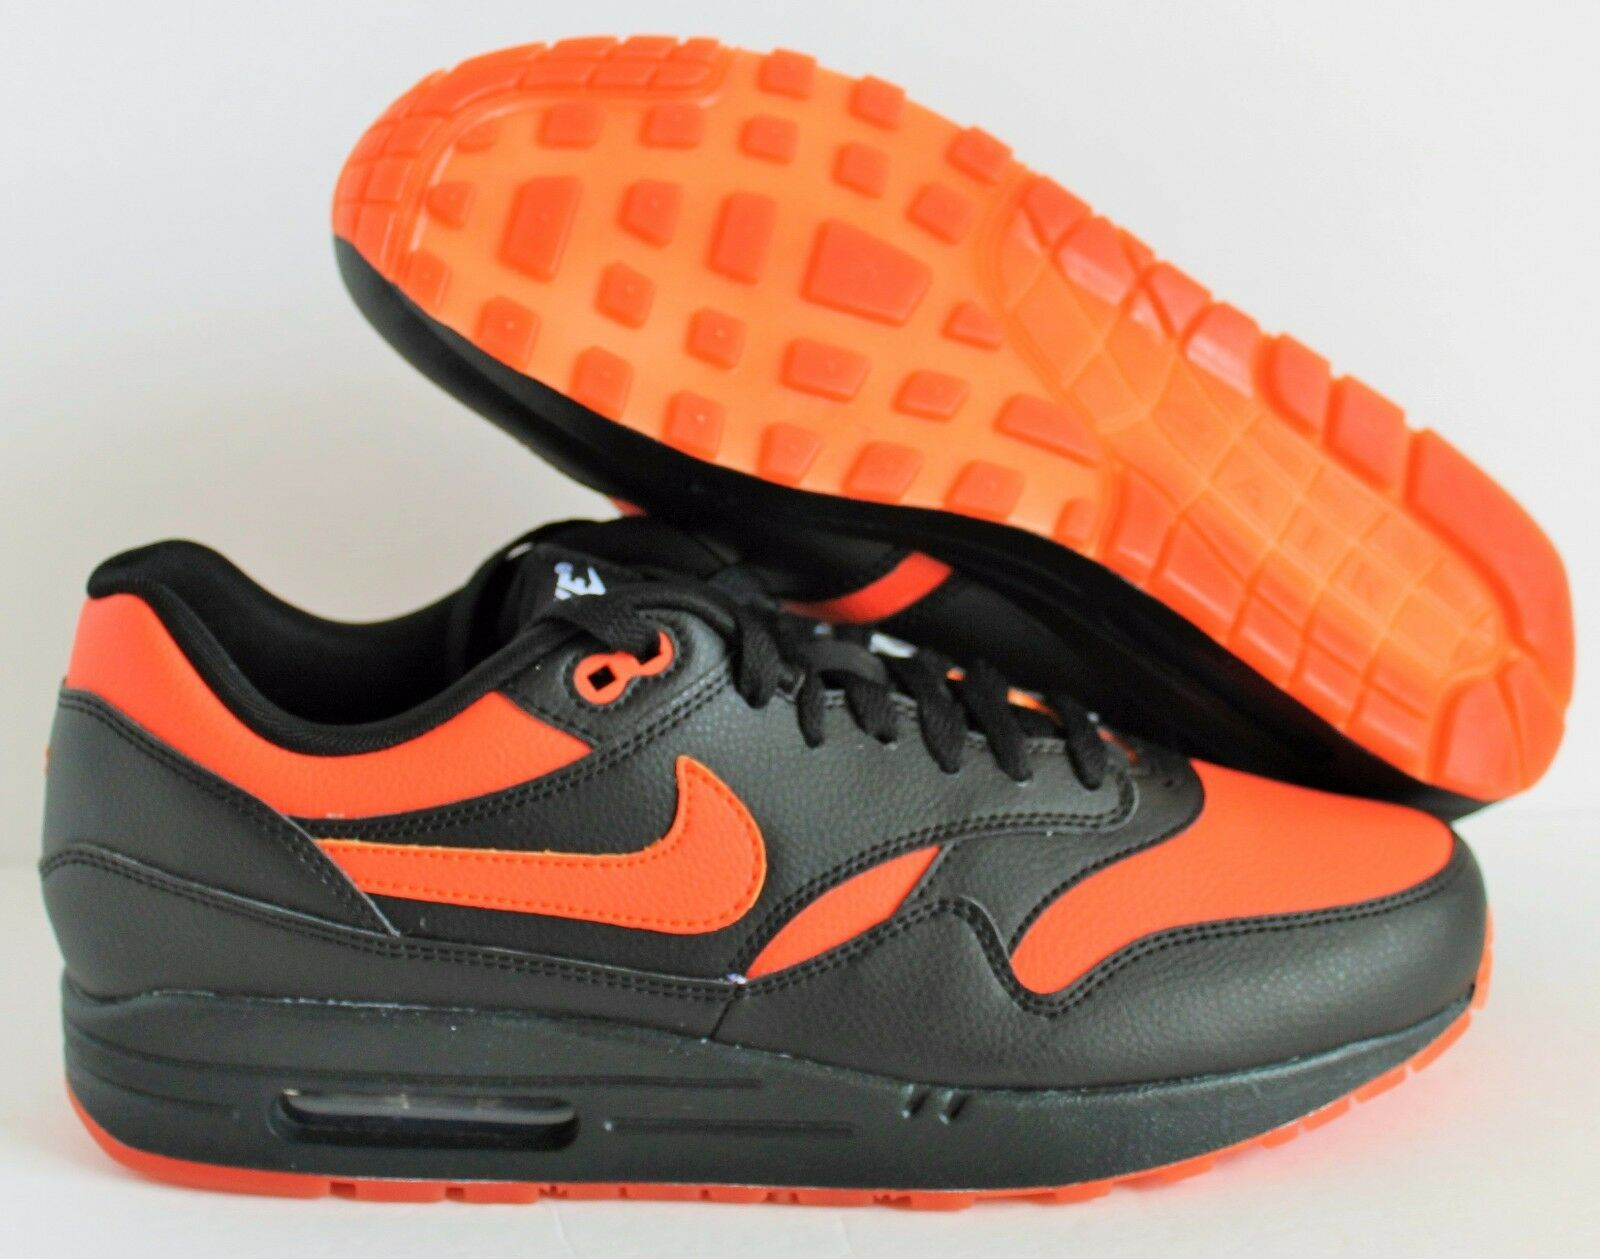 Nike homme Air SZ Max 1 ID noir-Orange  SZ Air 10 [433213-999] 429342